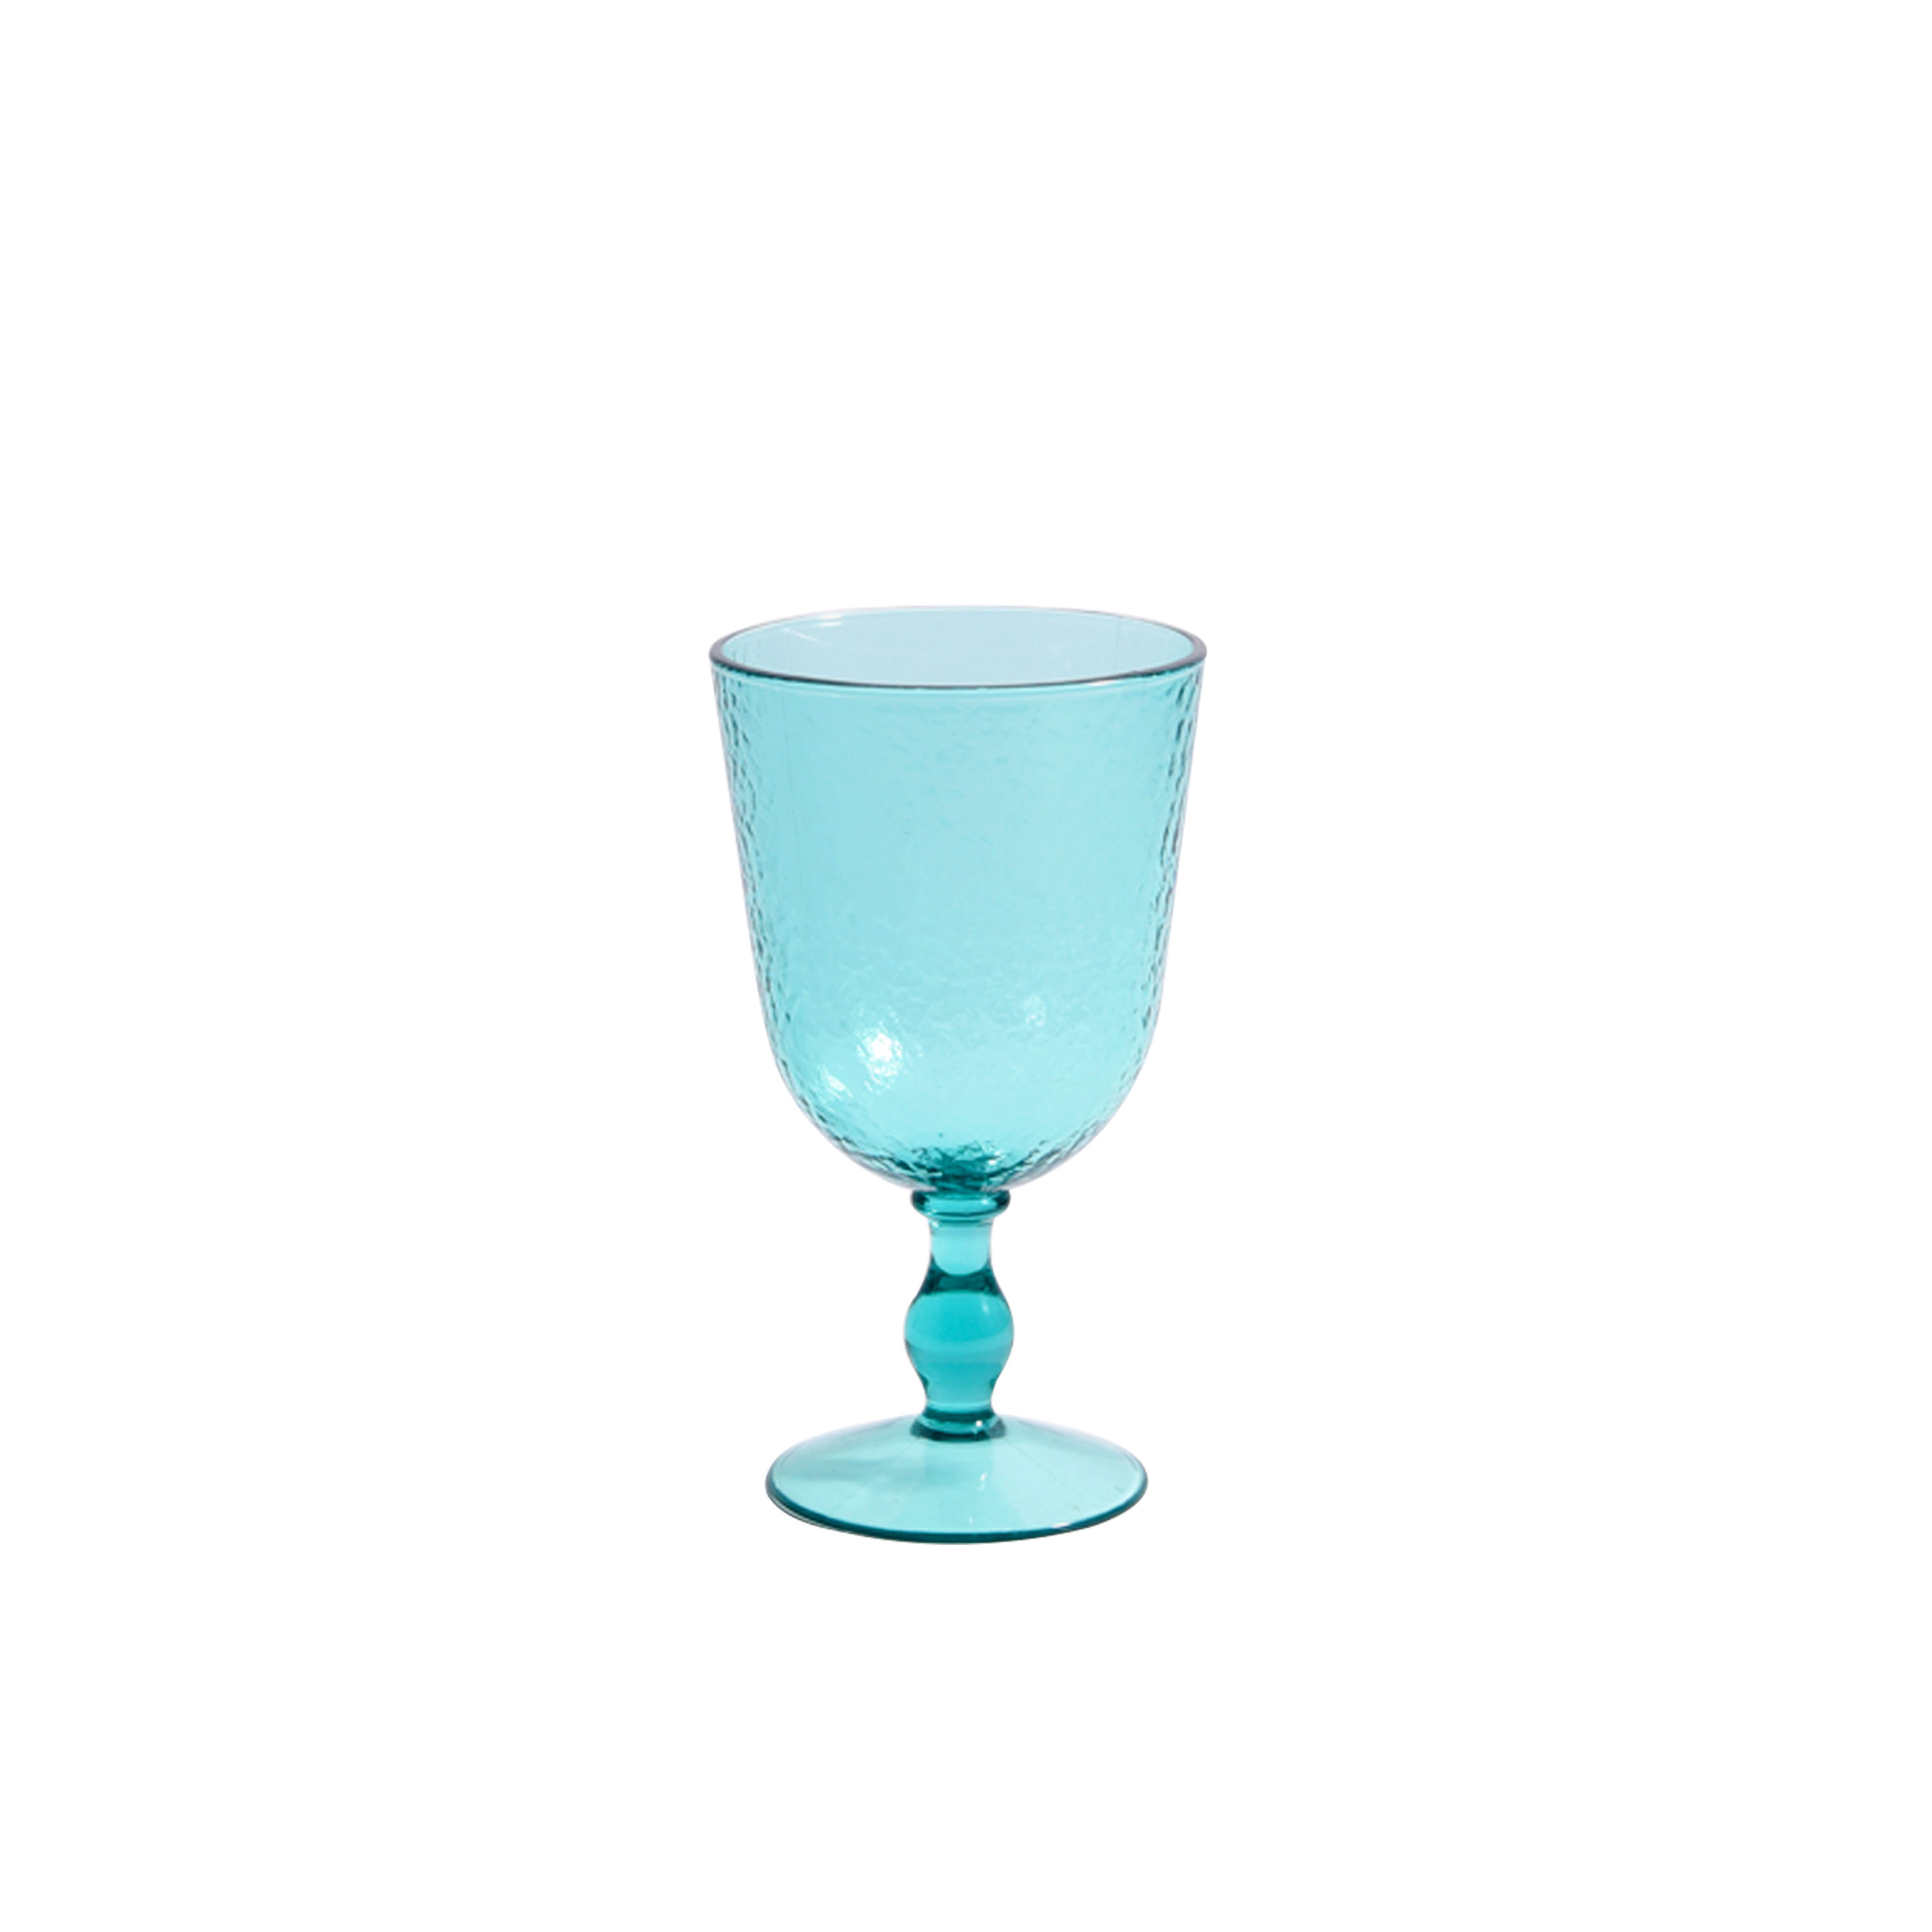 Patricia Heaton Home Southampton 14oz Turquoise Water Goblet Set, 12-Pack